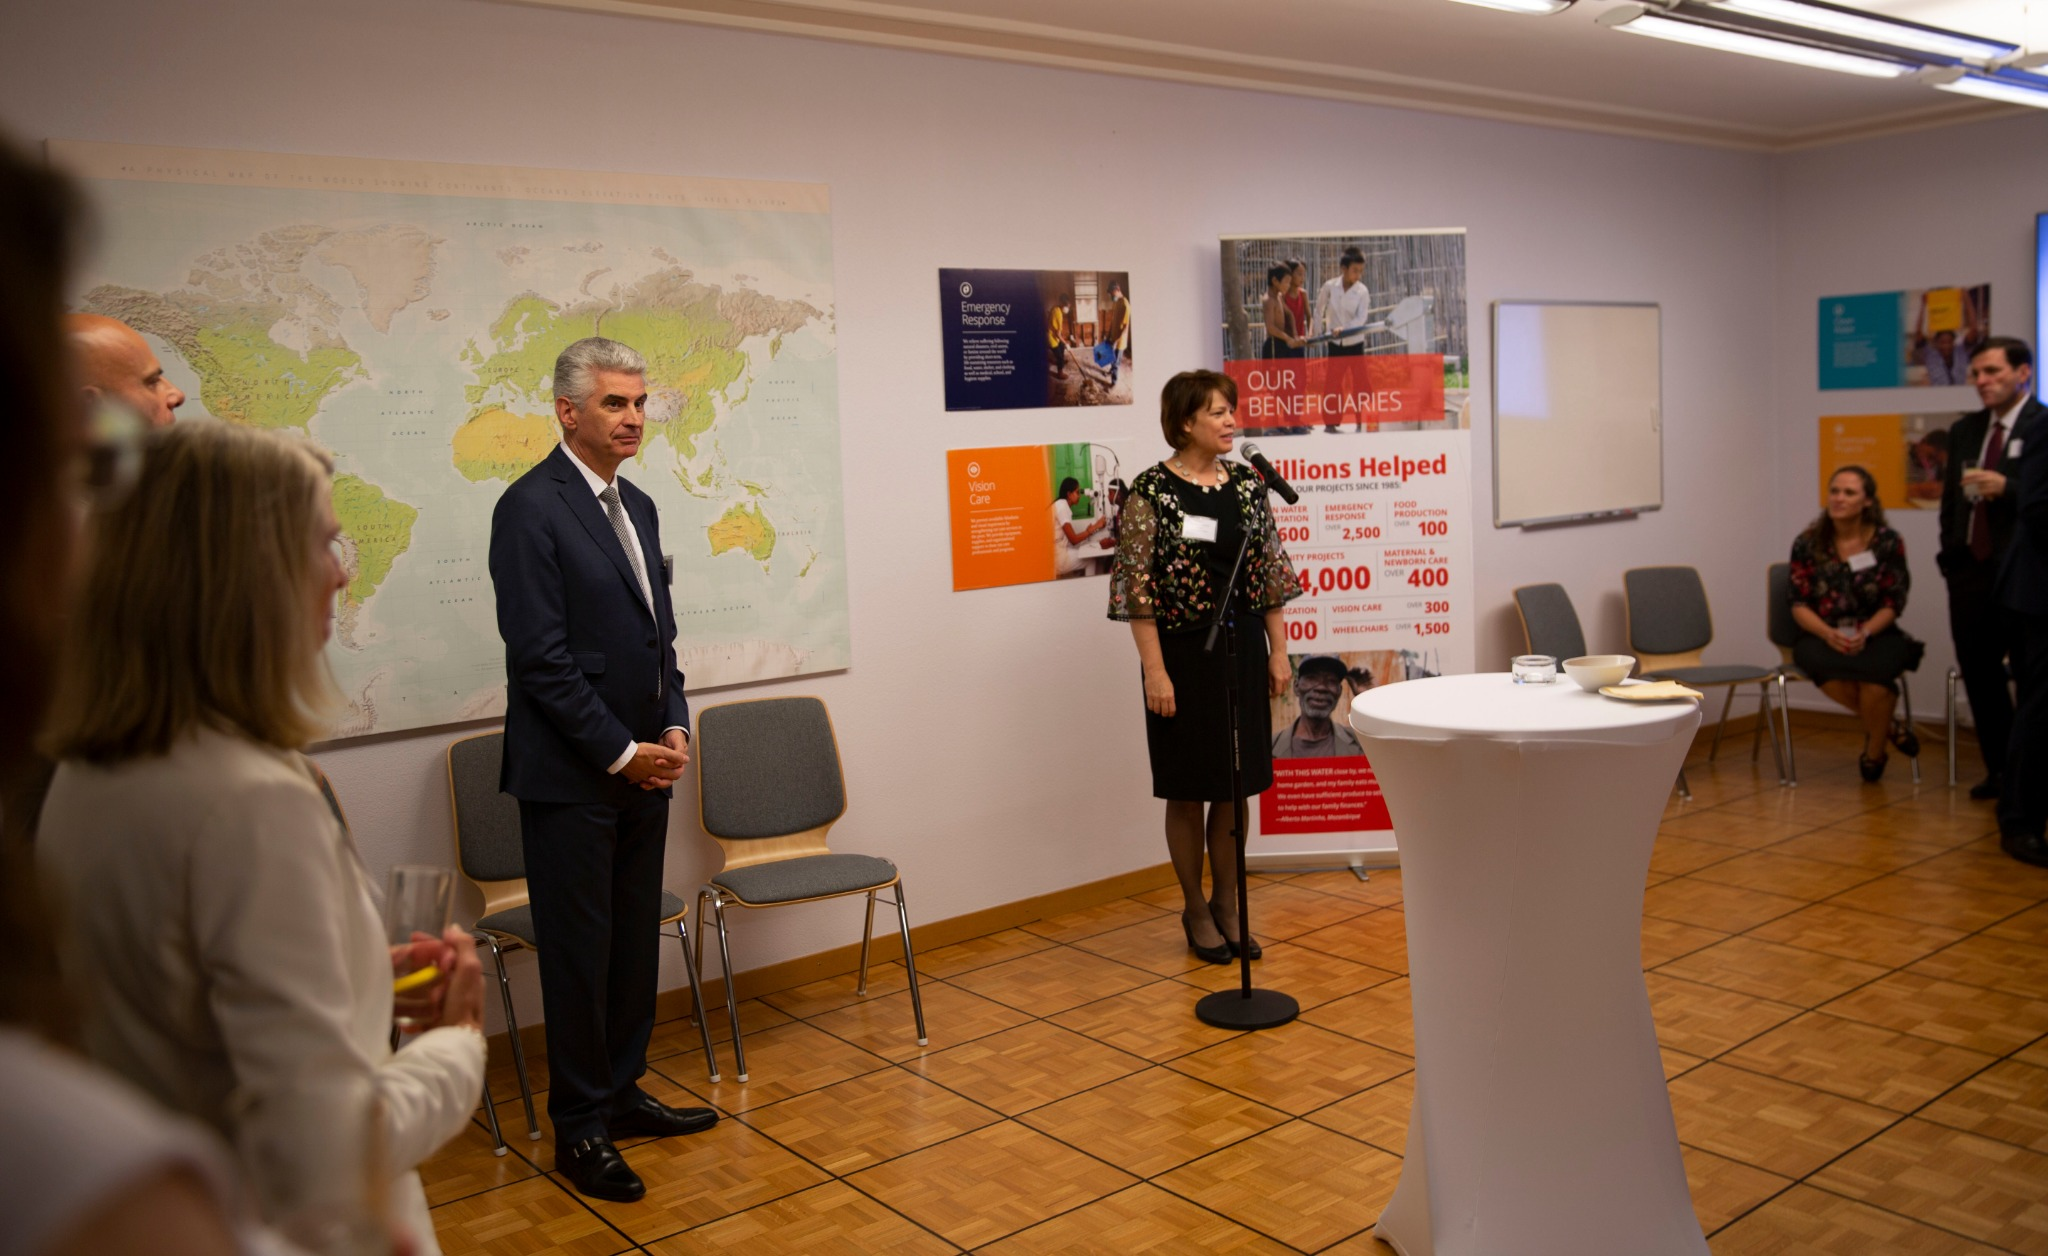 Sister Sharon Eubank, president of Latter-day Saint Charities, explains what the Church charity does for people in need around the world during a reception in Geneva, Switzerland, on Sept. 16, 2019. Presiding Bishop Gerald Caussé is also pictured at left.